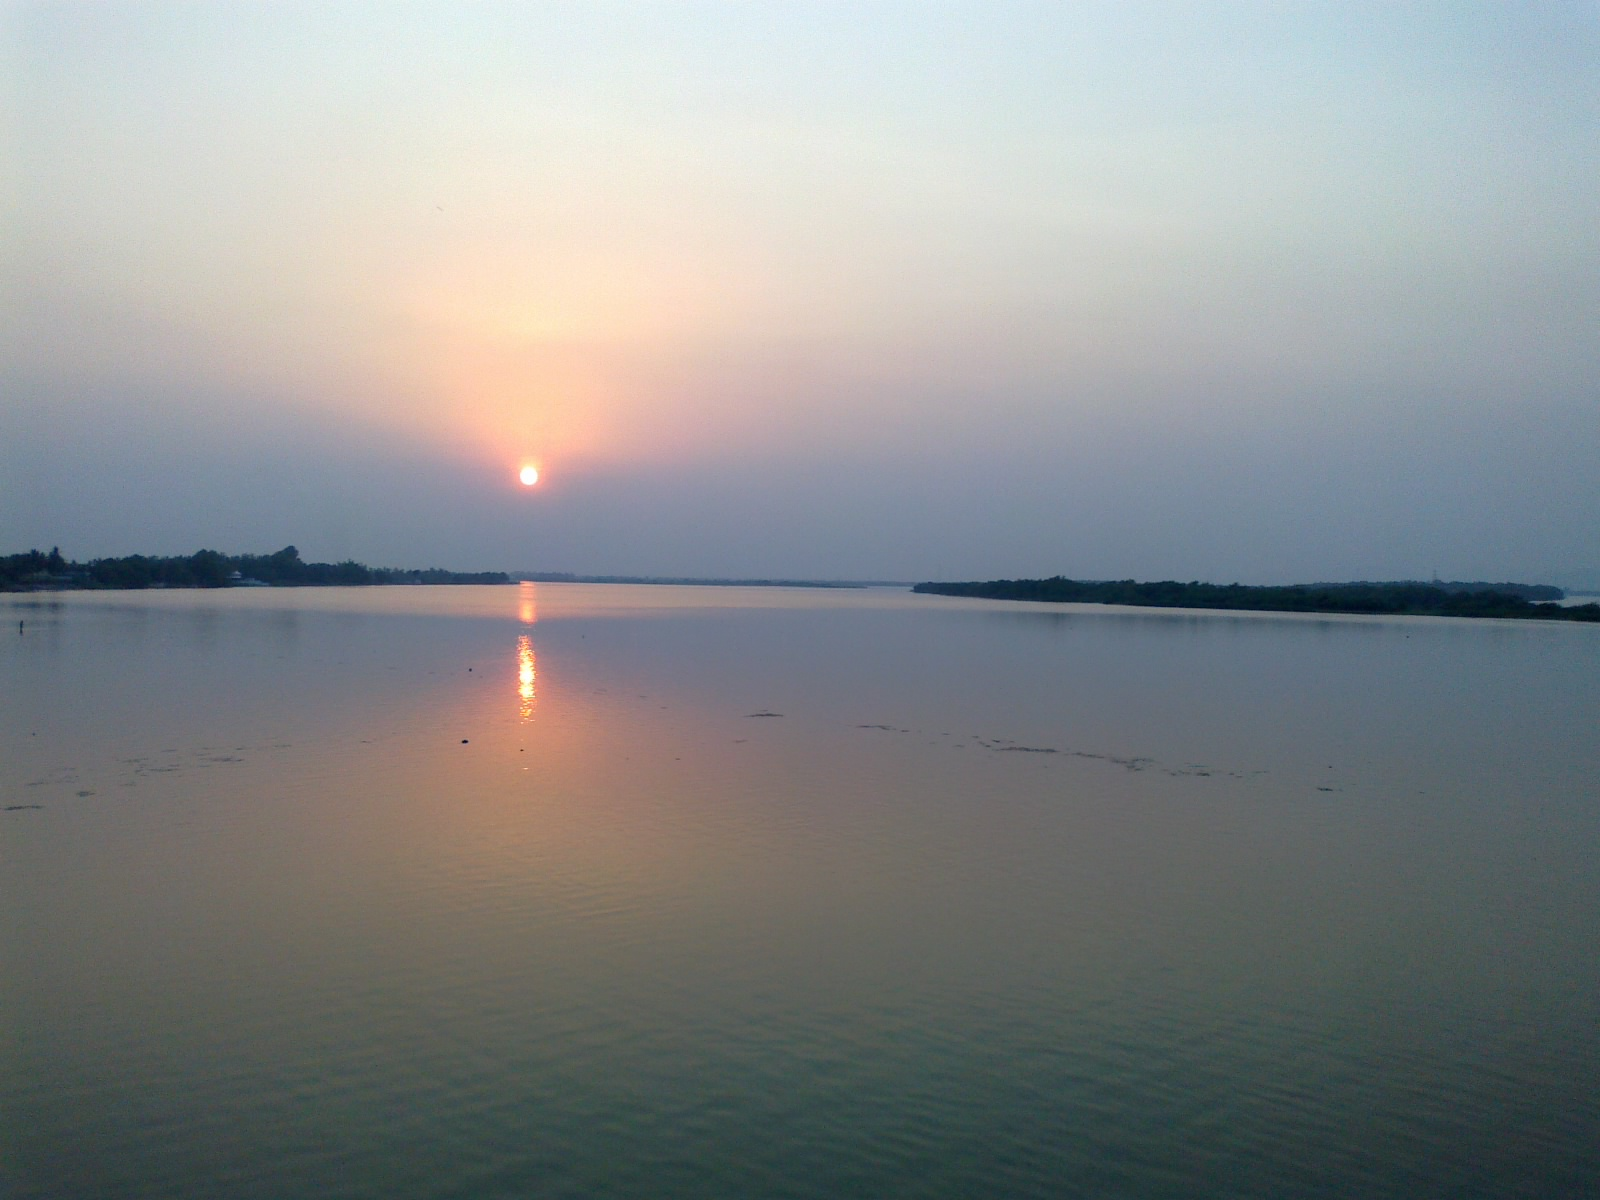 File:Krishna River.jpg